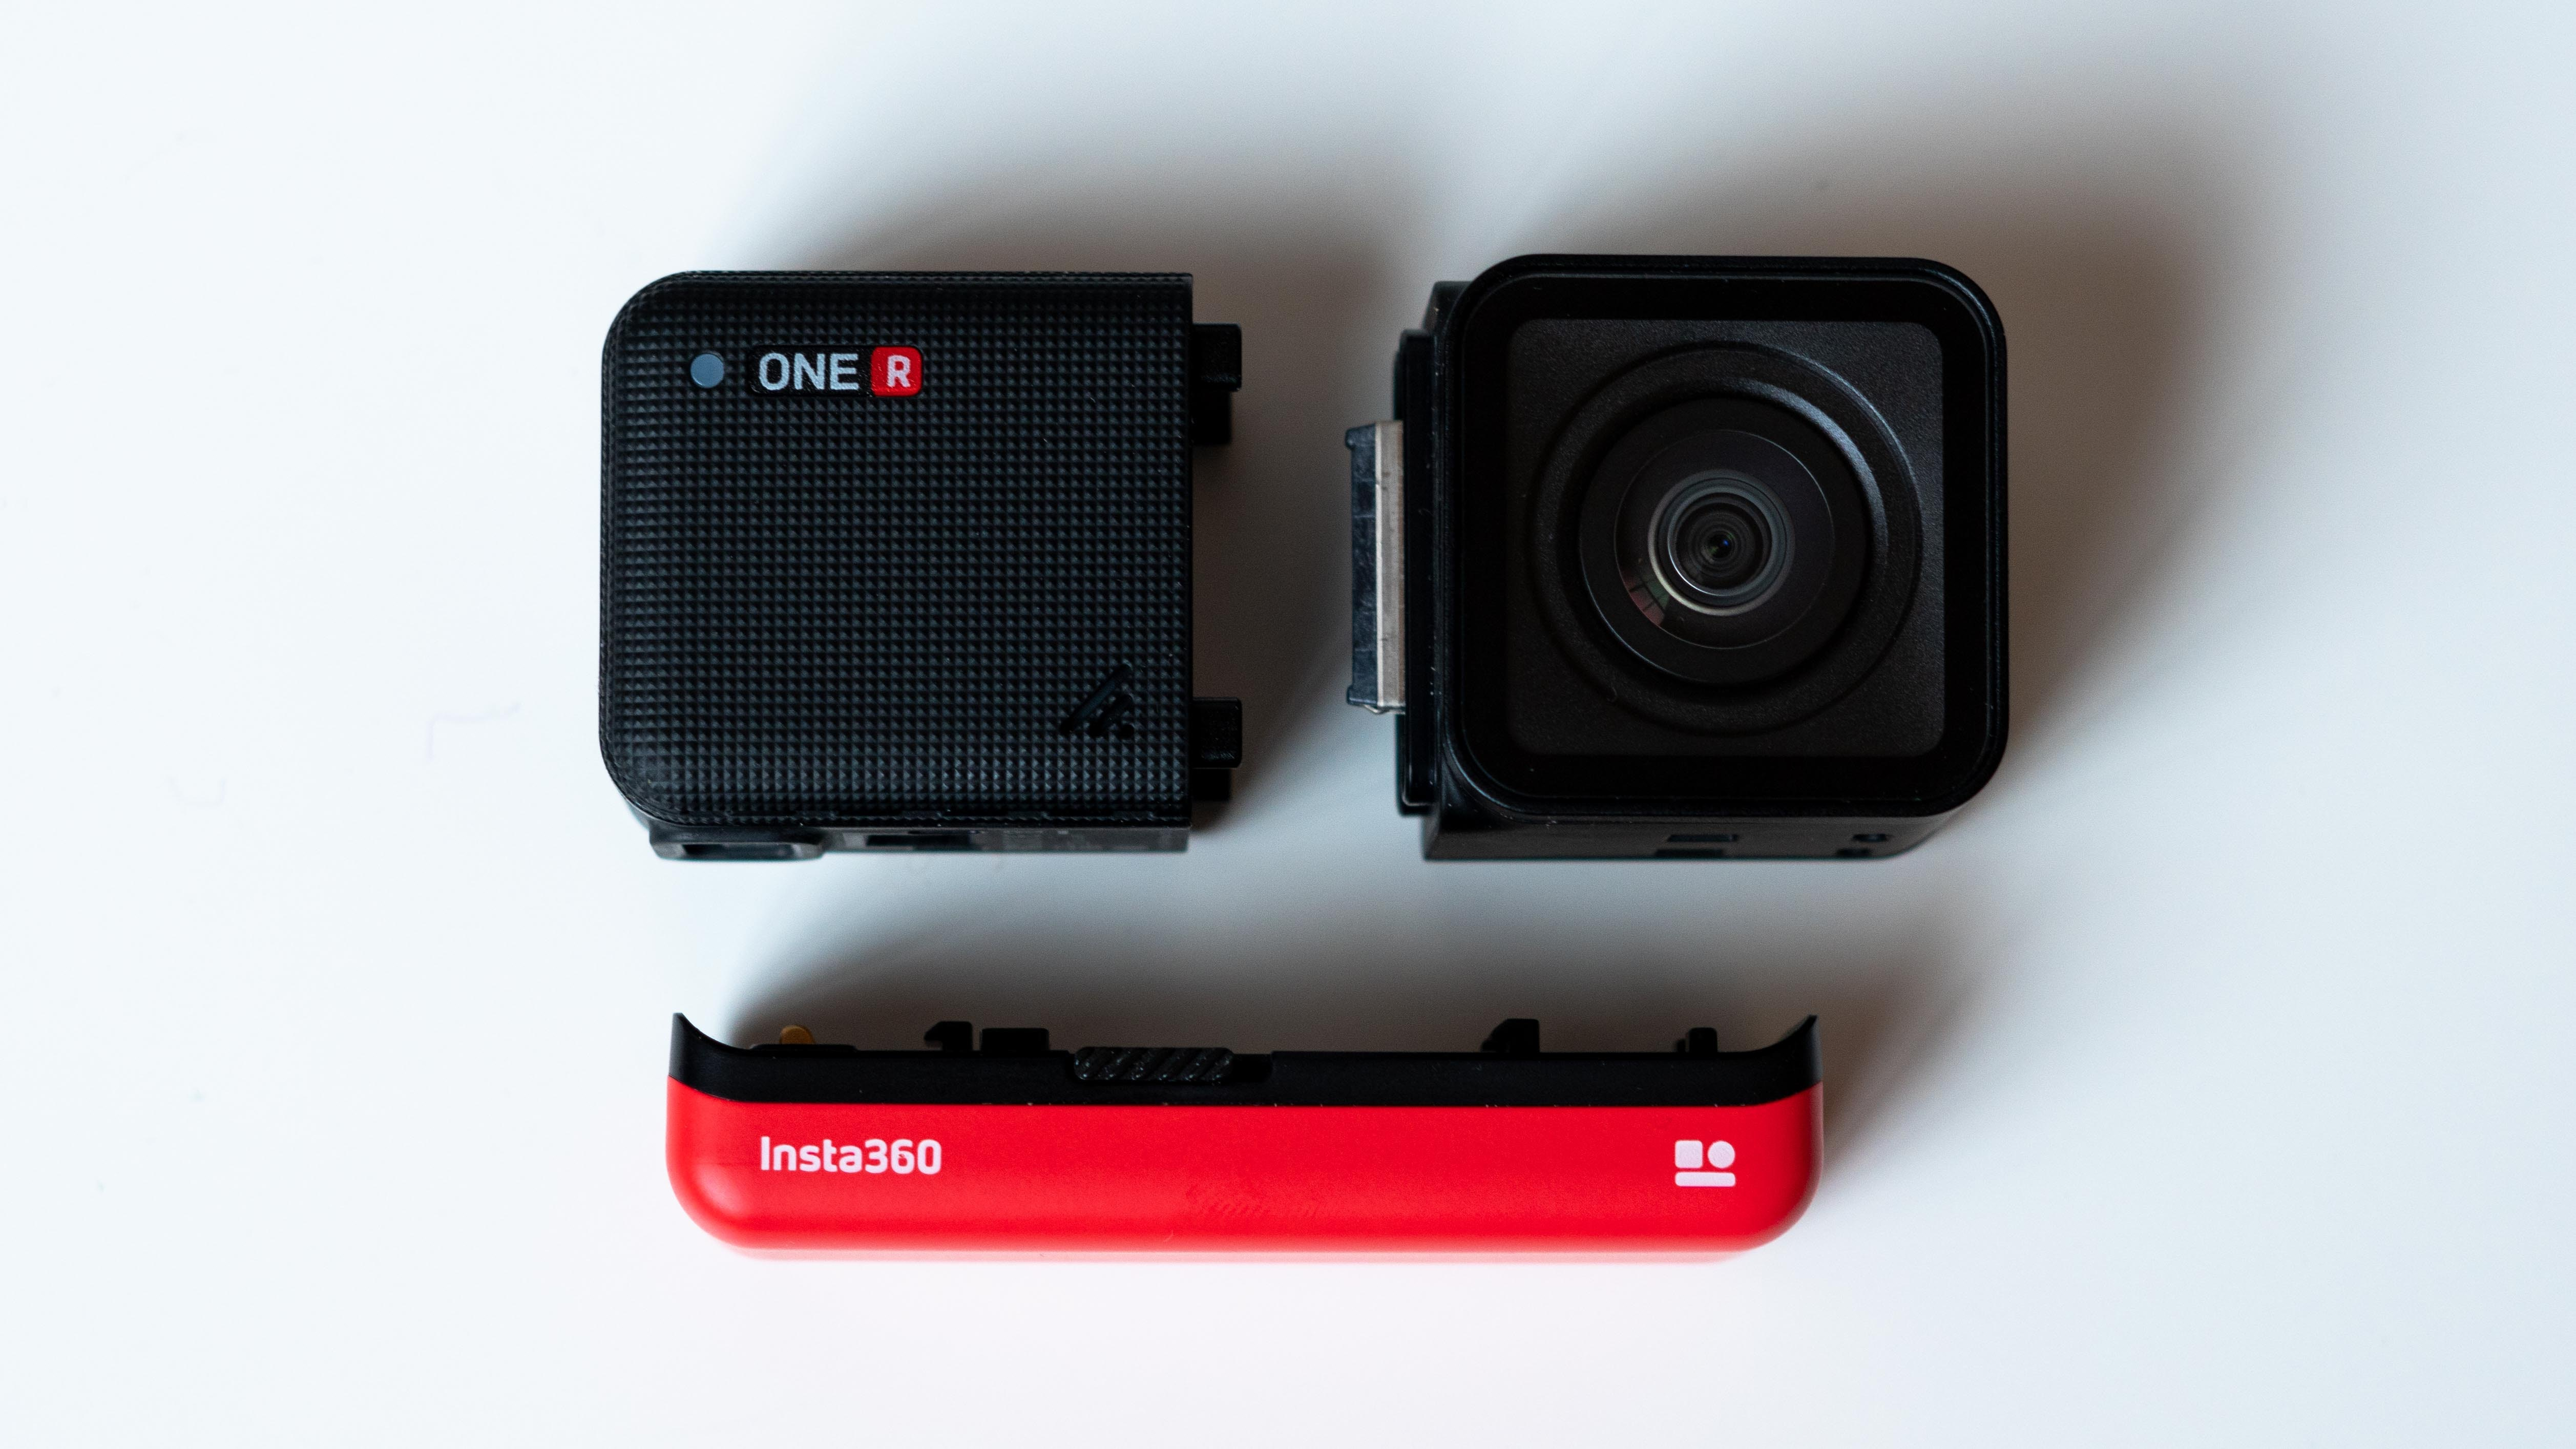 insta306-one-r-review-jt-overviews (2 of 2)